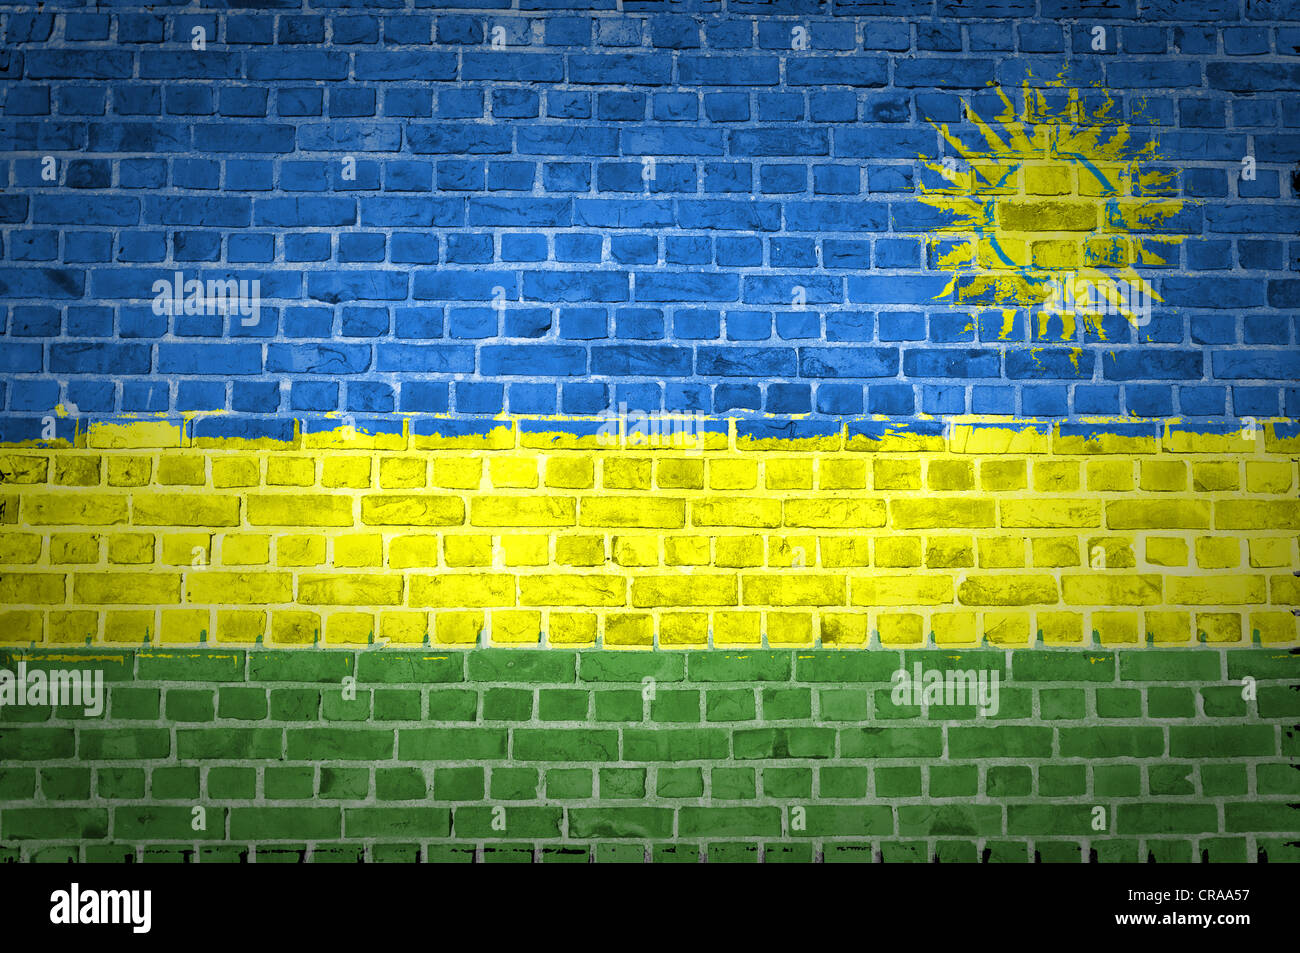 An image of the Rwanda flag painted on a brick wall in an urban location Stock Photo